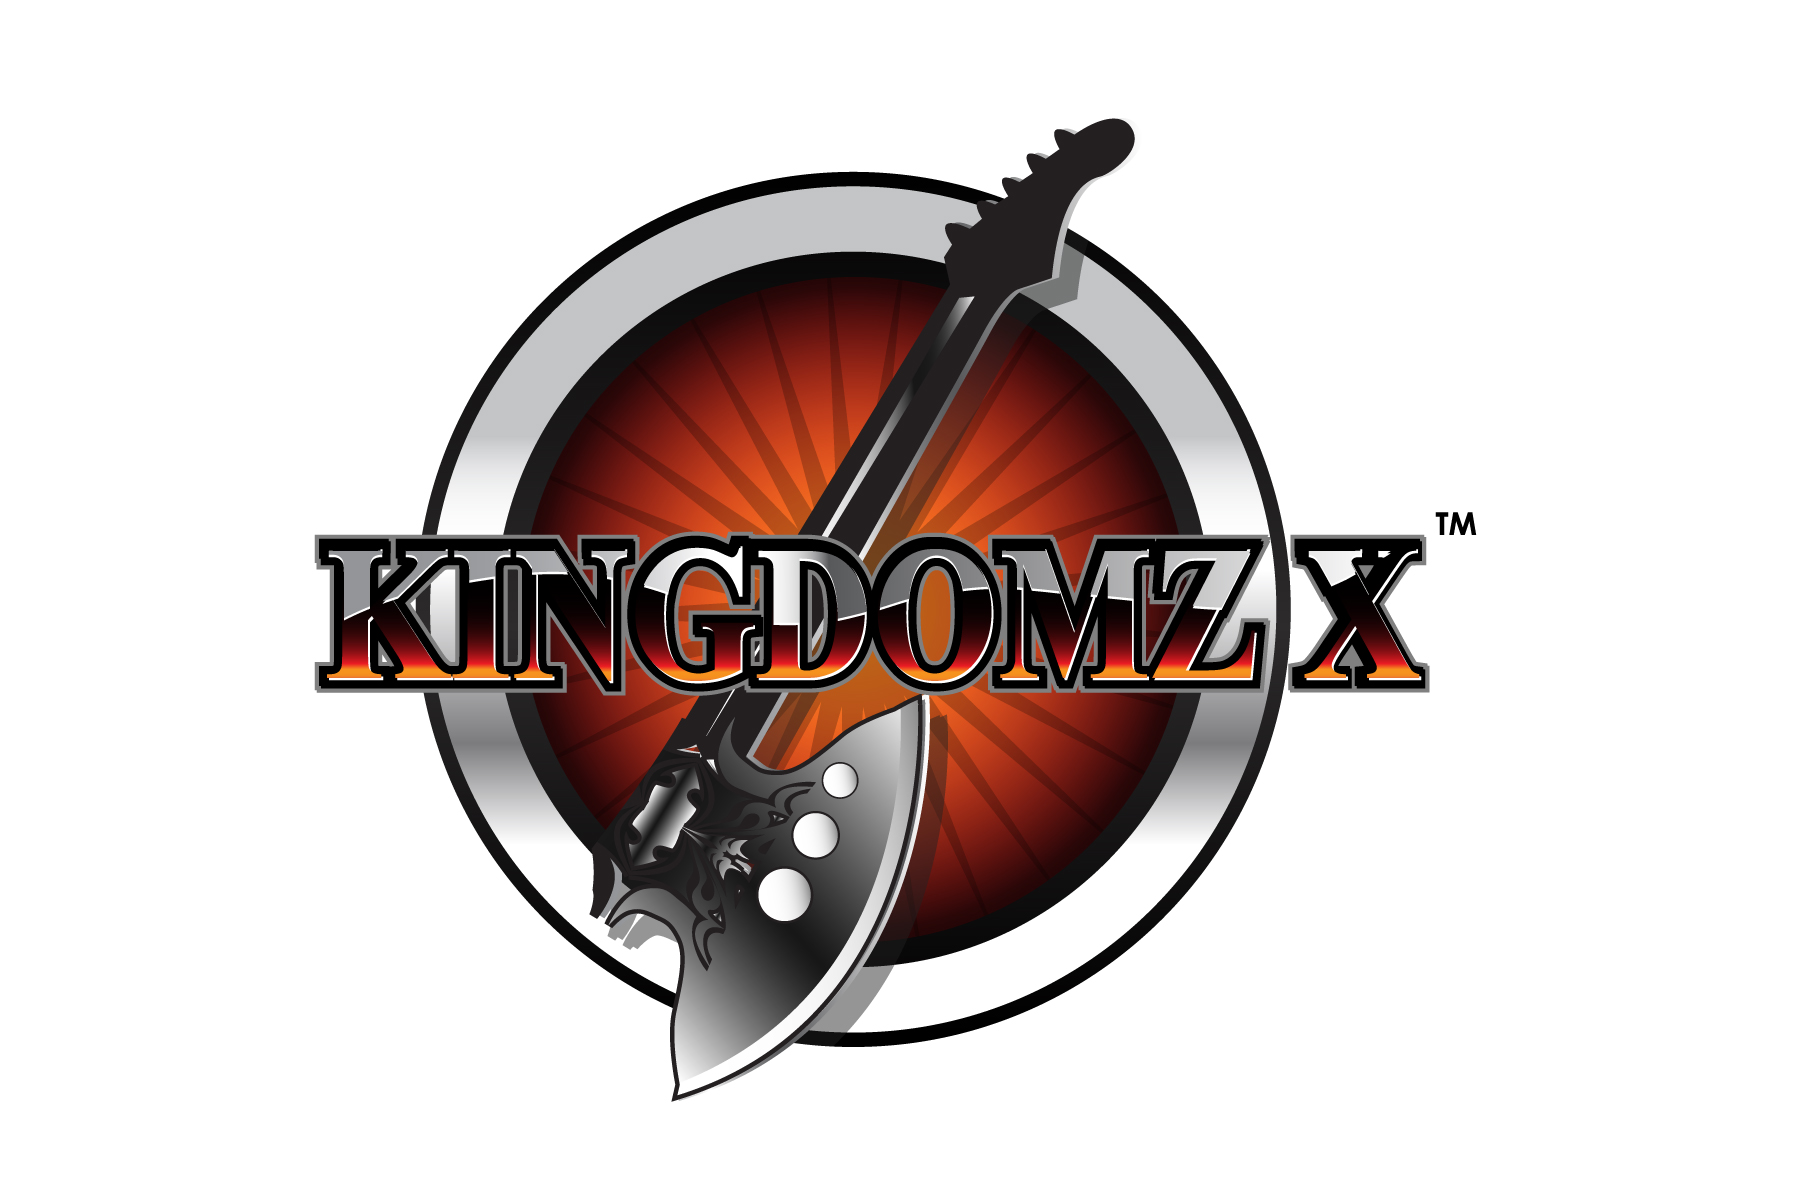 Kingdomz X Heavy Metal Entertainment Icon